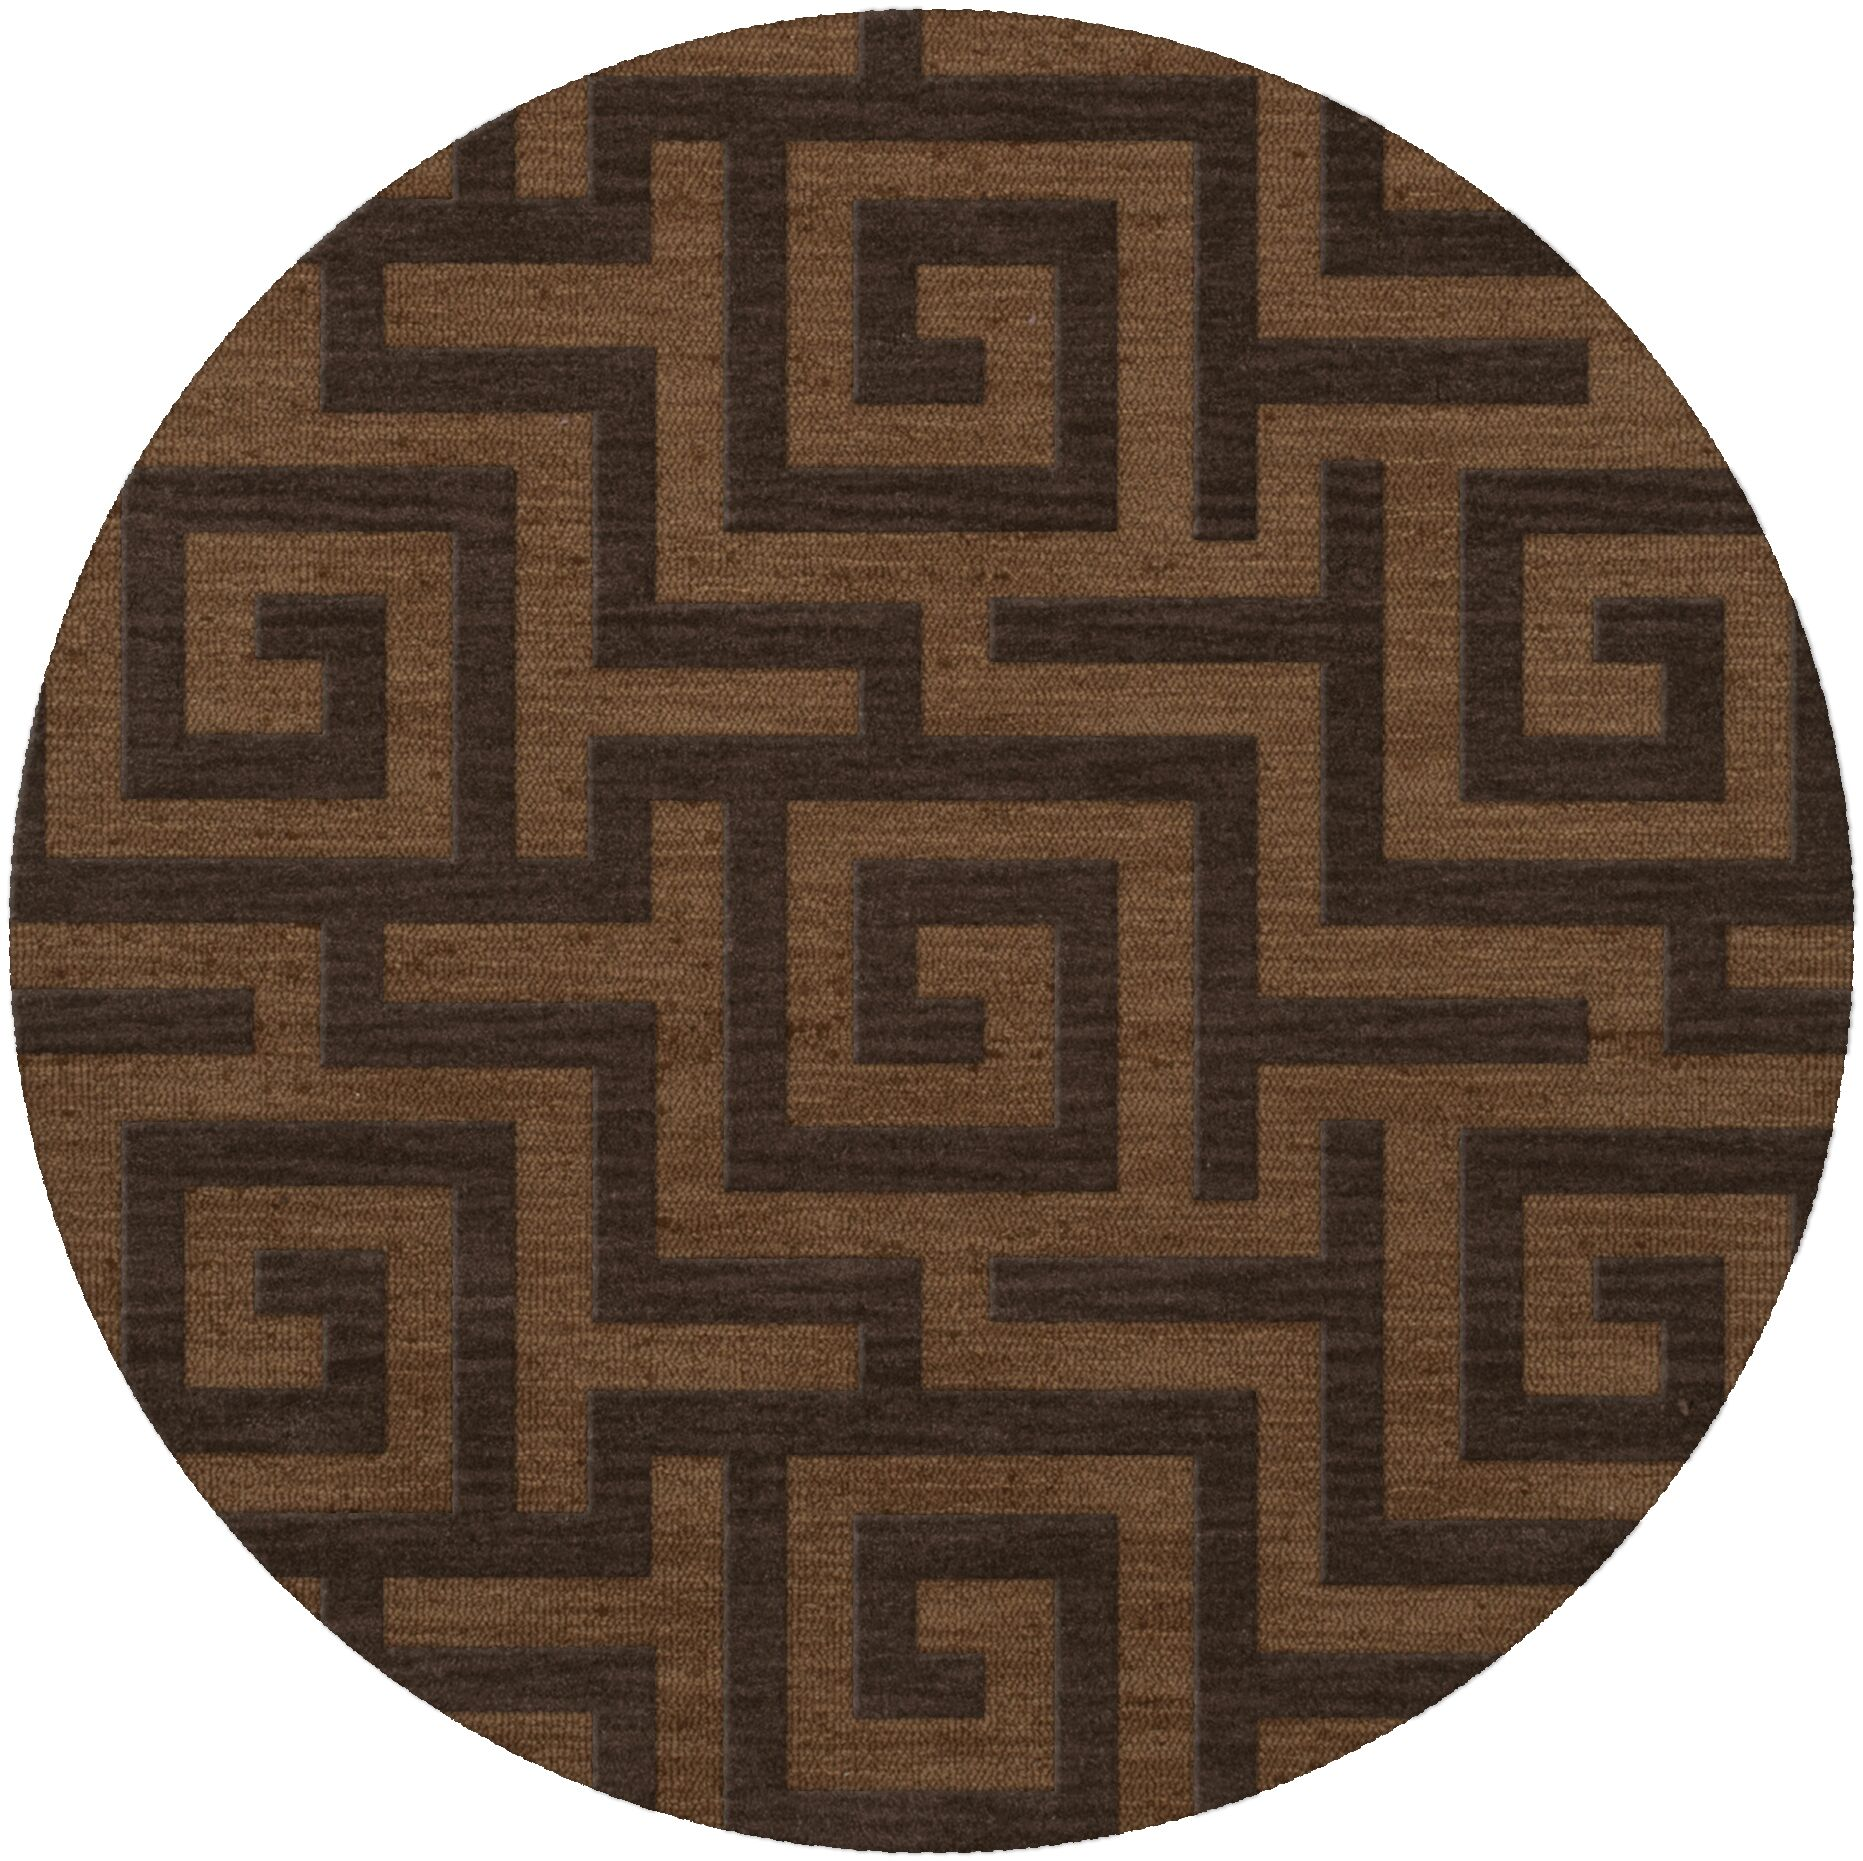 Dover Tufted Wool Caramel Area Rug Rug Size: Round 8'